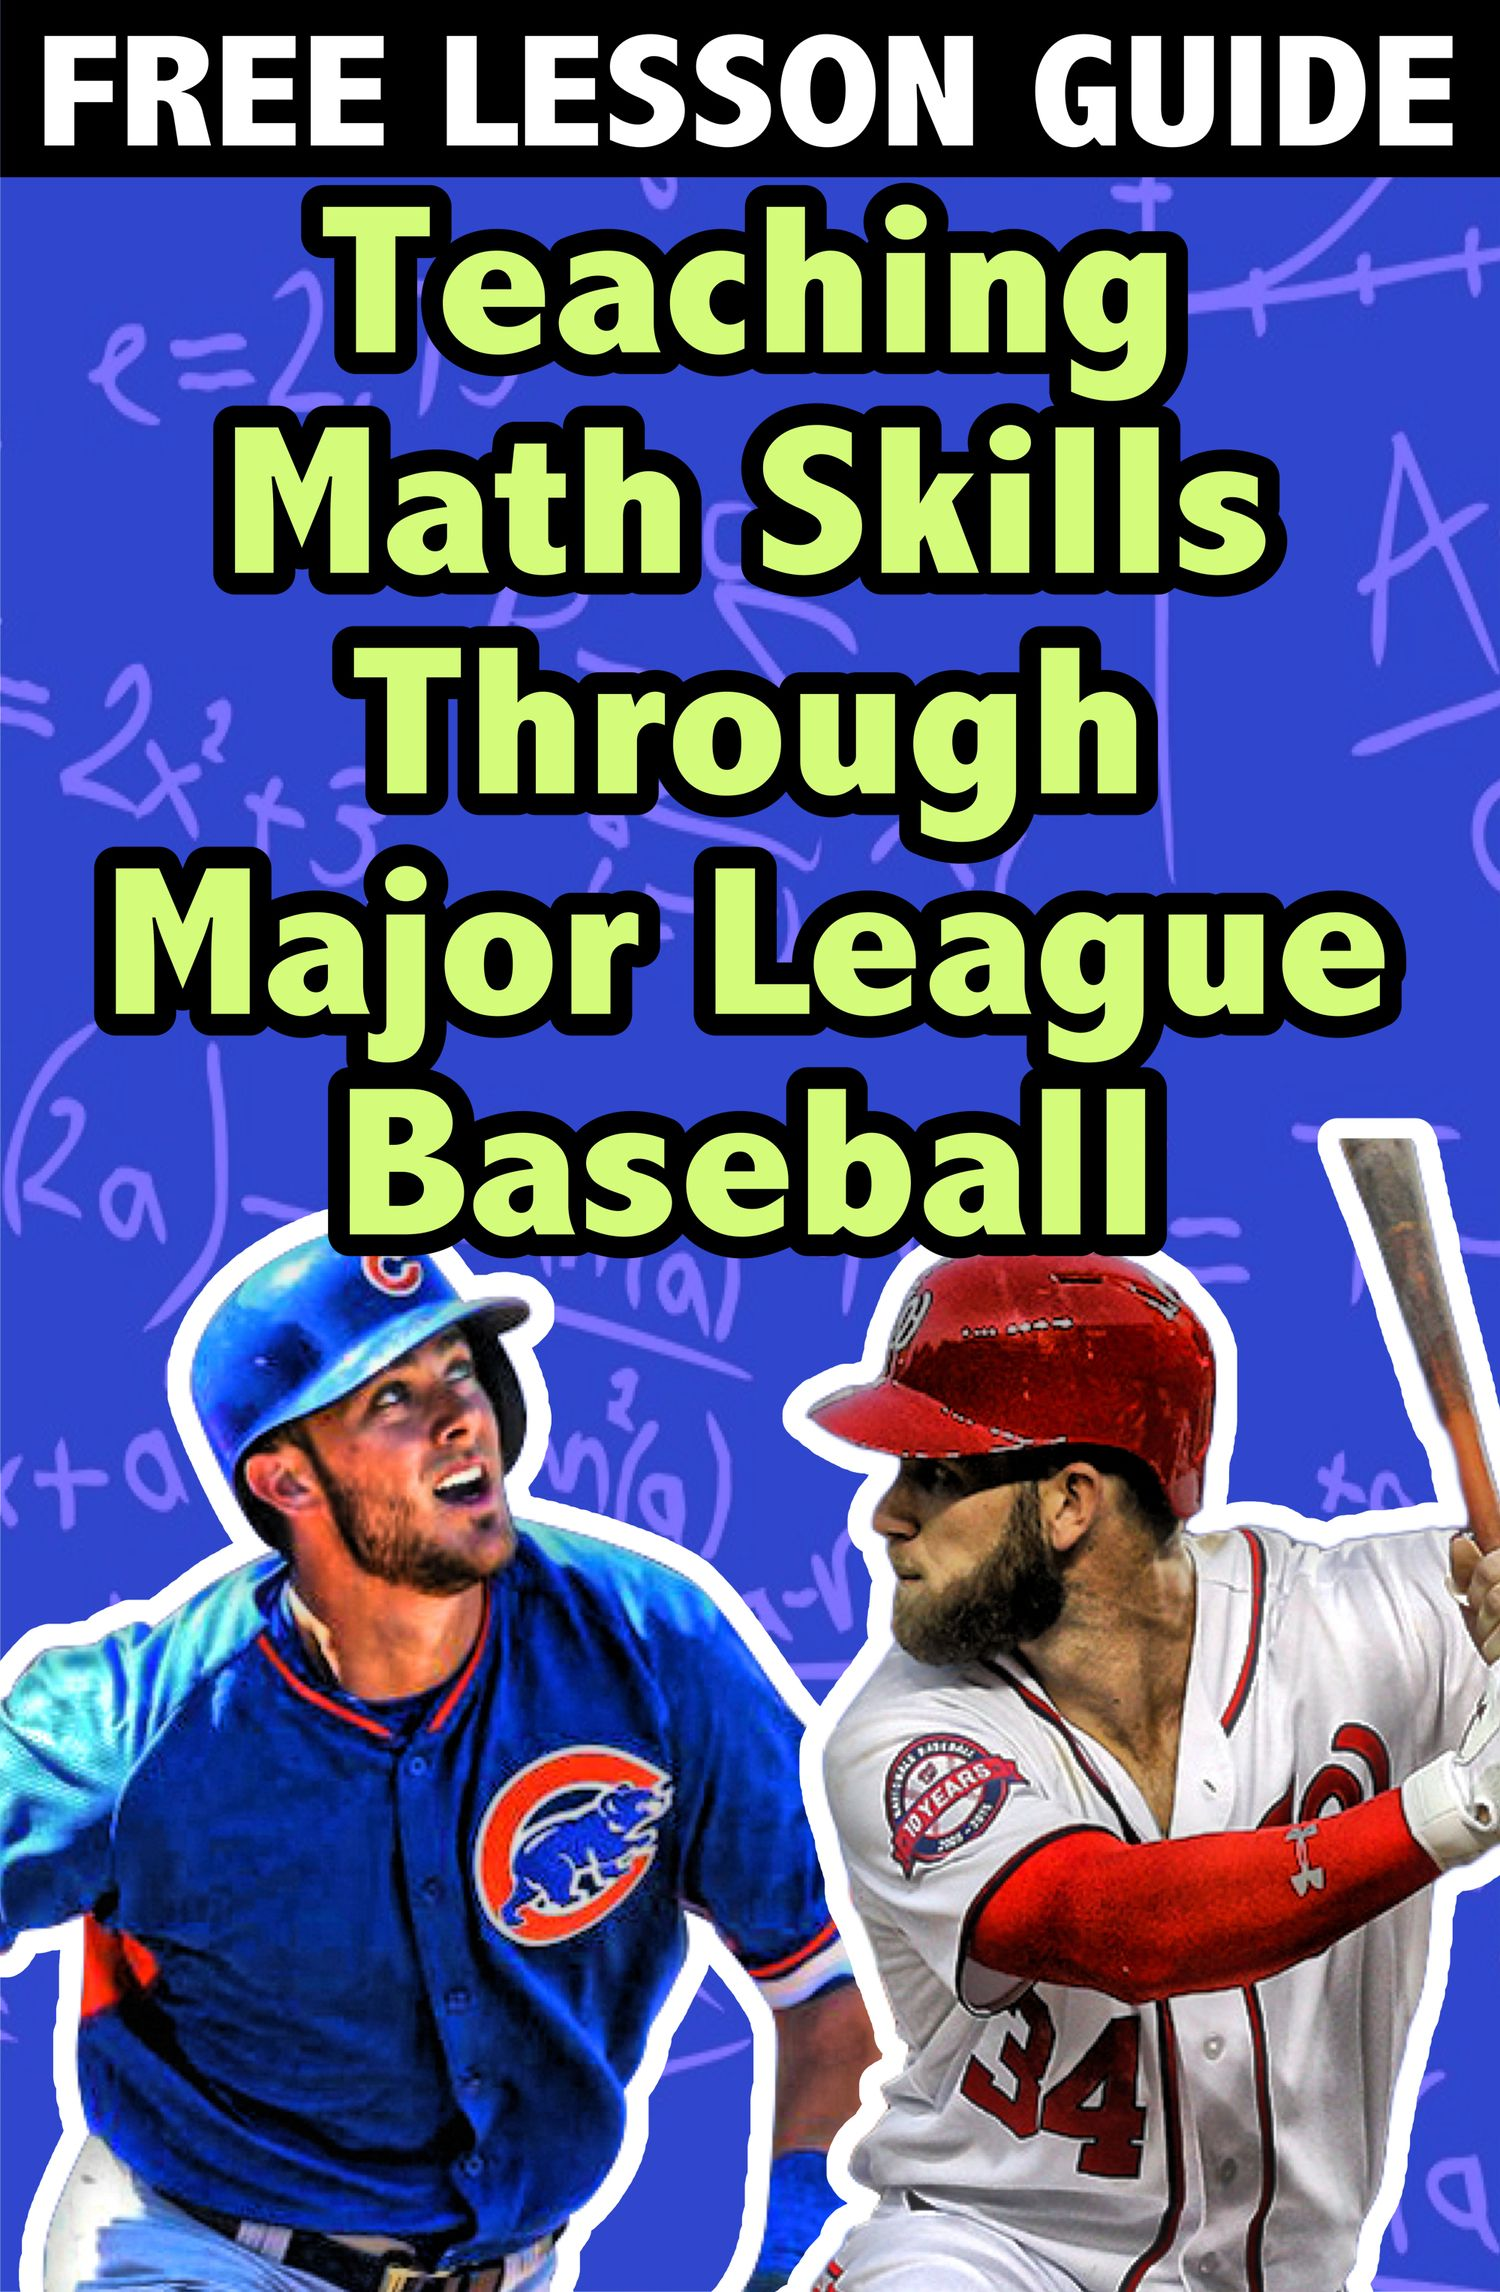 Teaching Math Through Major League Baseballless